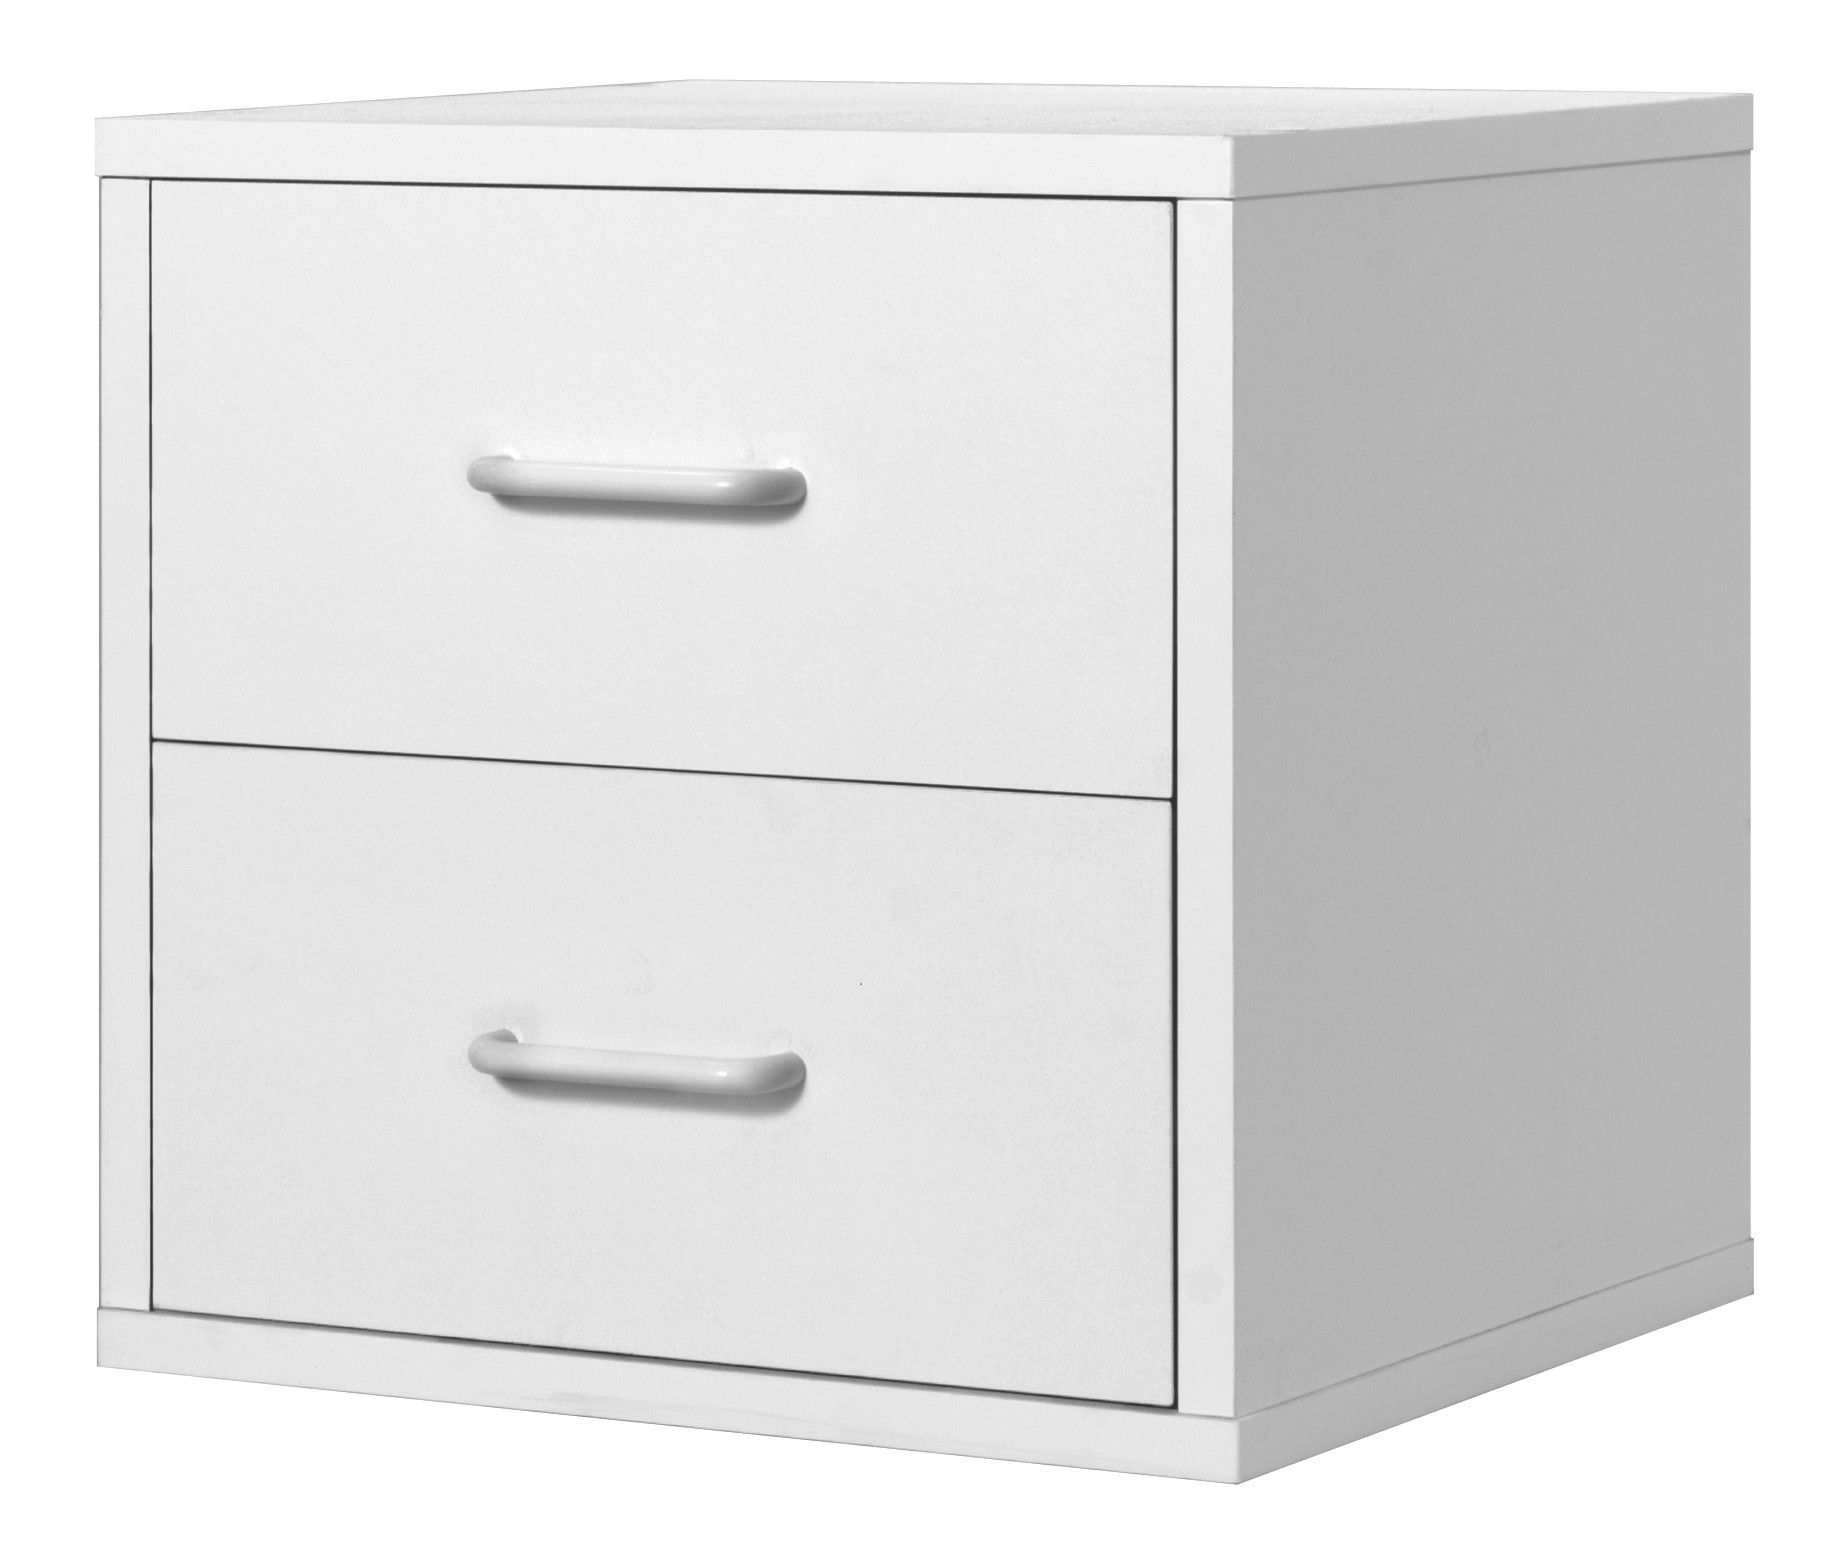 Foremost Modular Storage Cube with Two Drawers in White